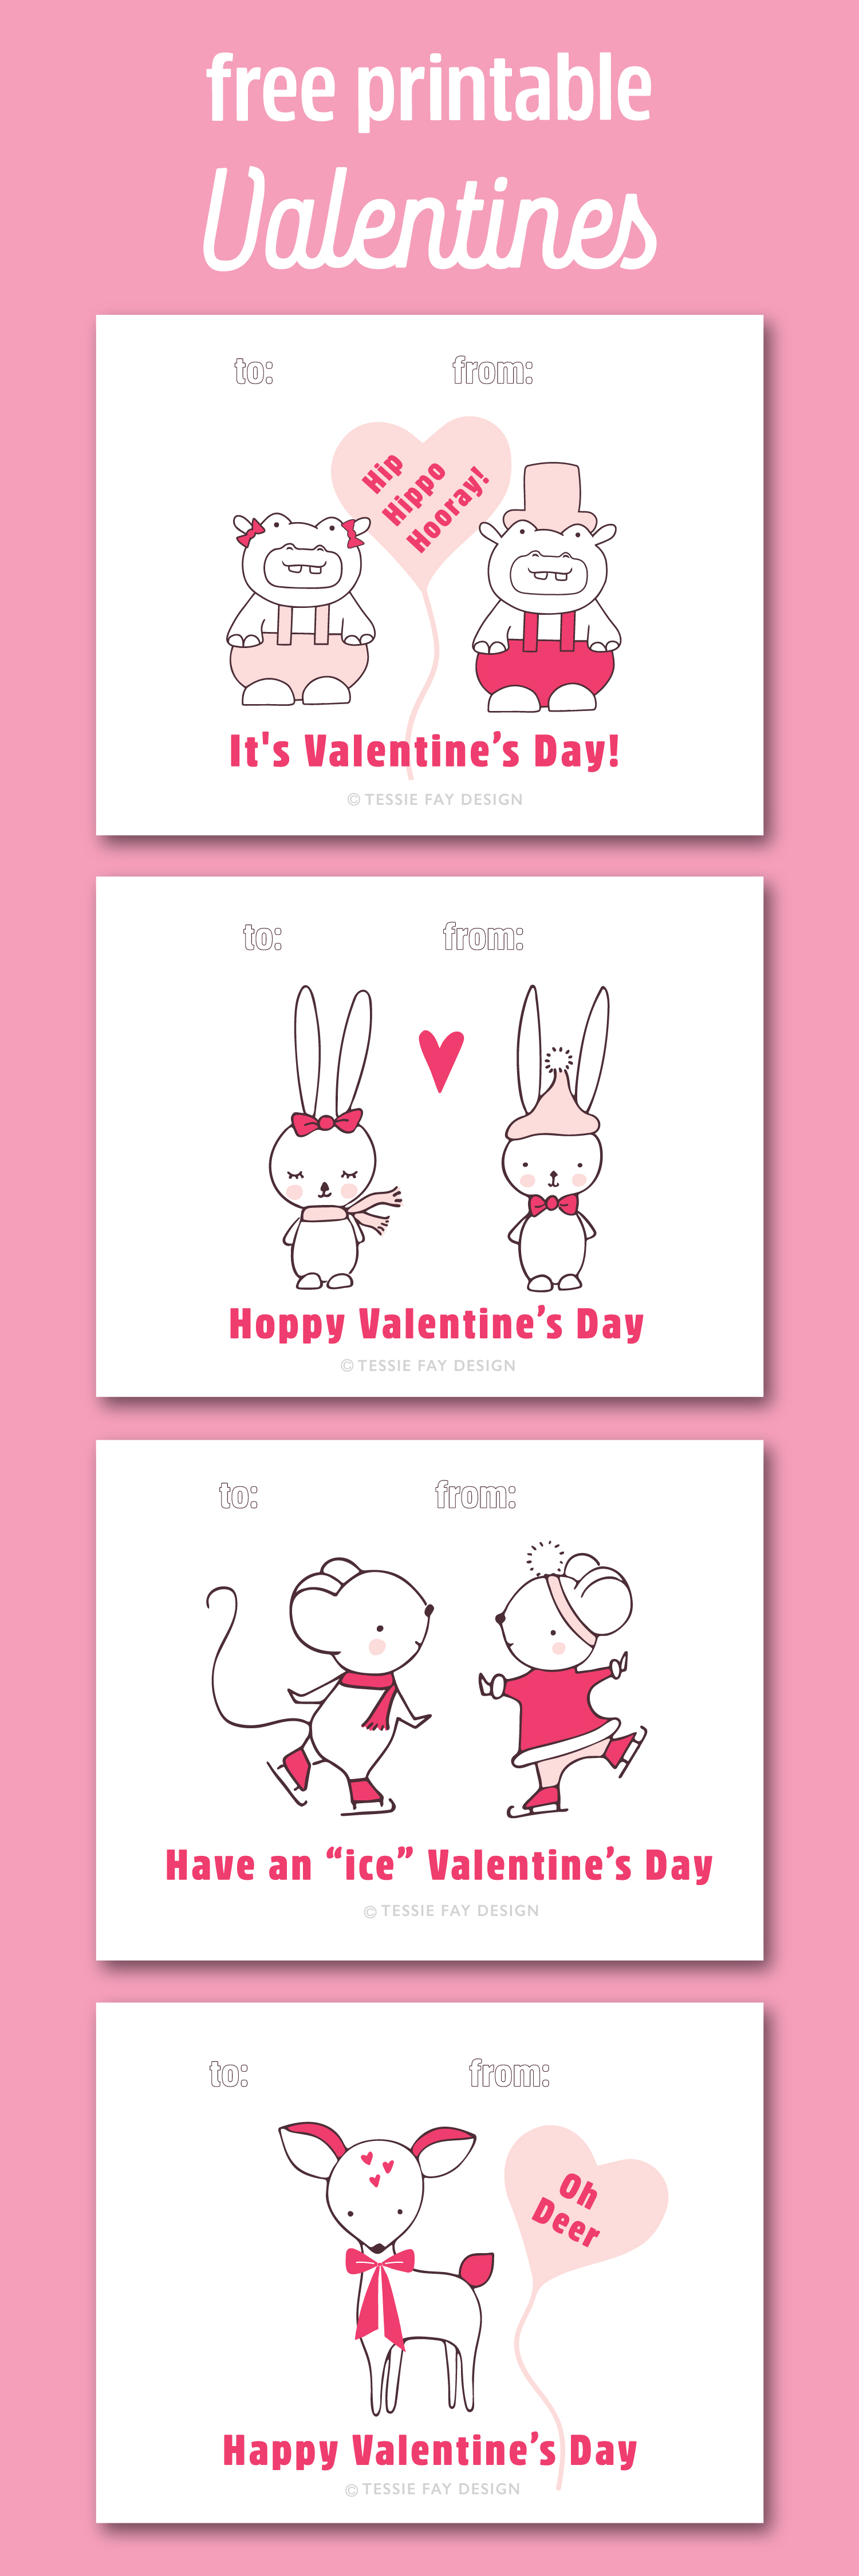 Free Printable Valentines! Animal valentines. Hippo, mice, bunny and dear.